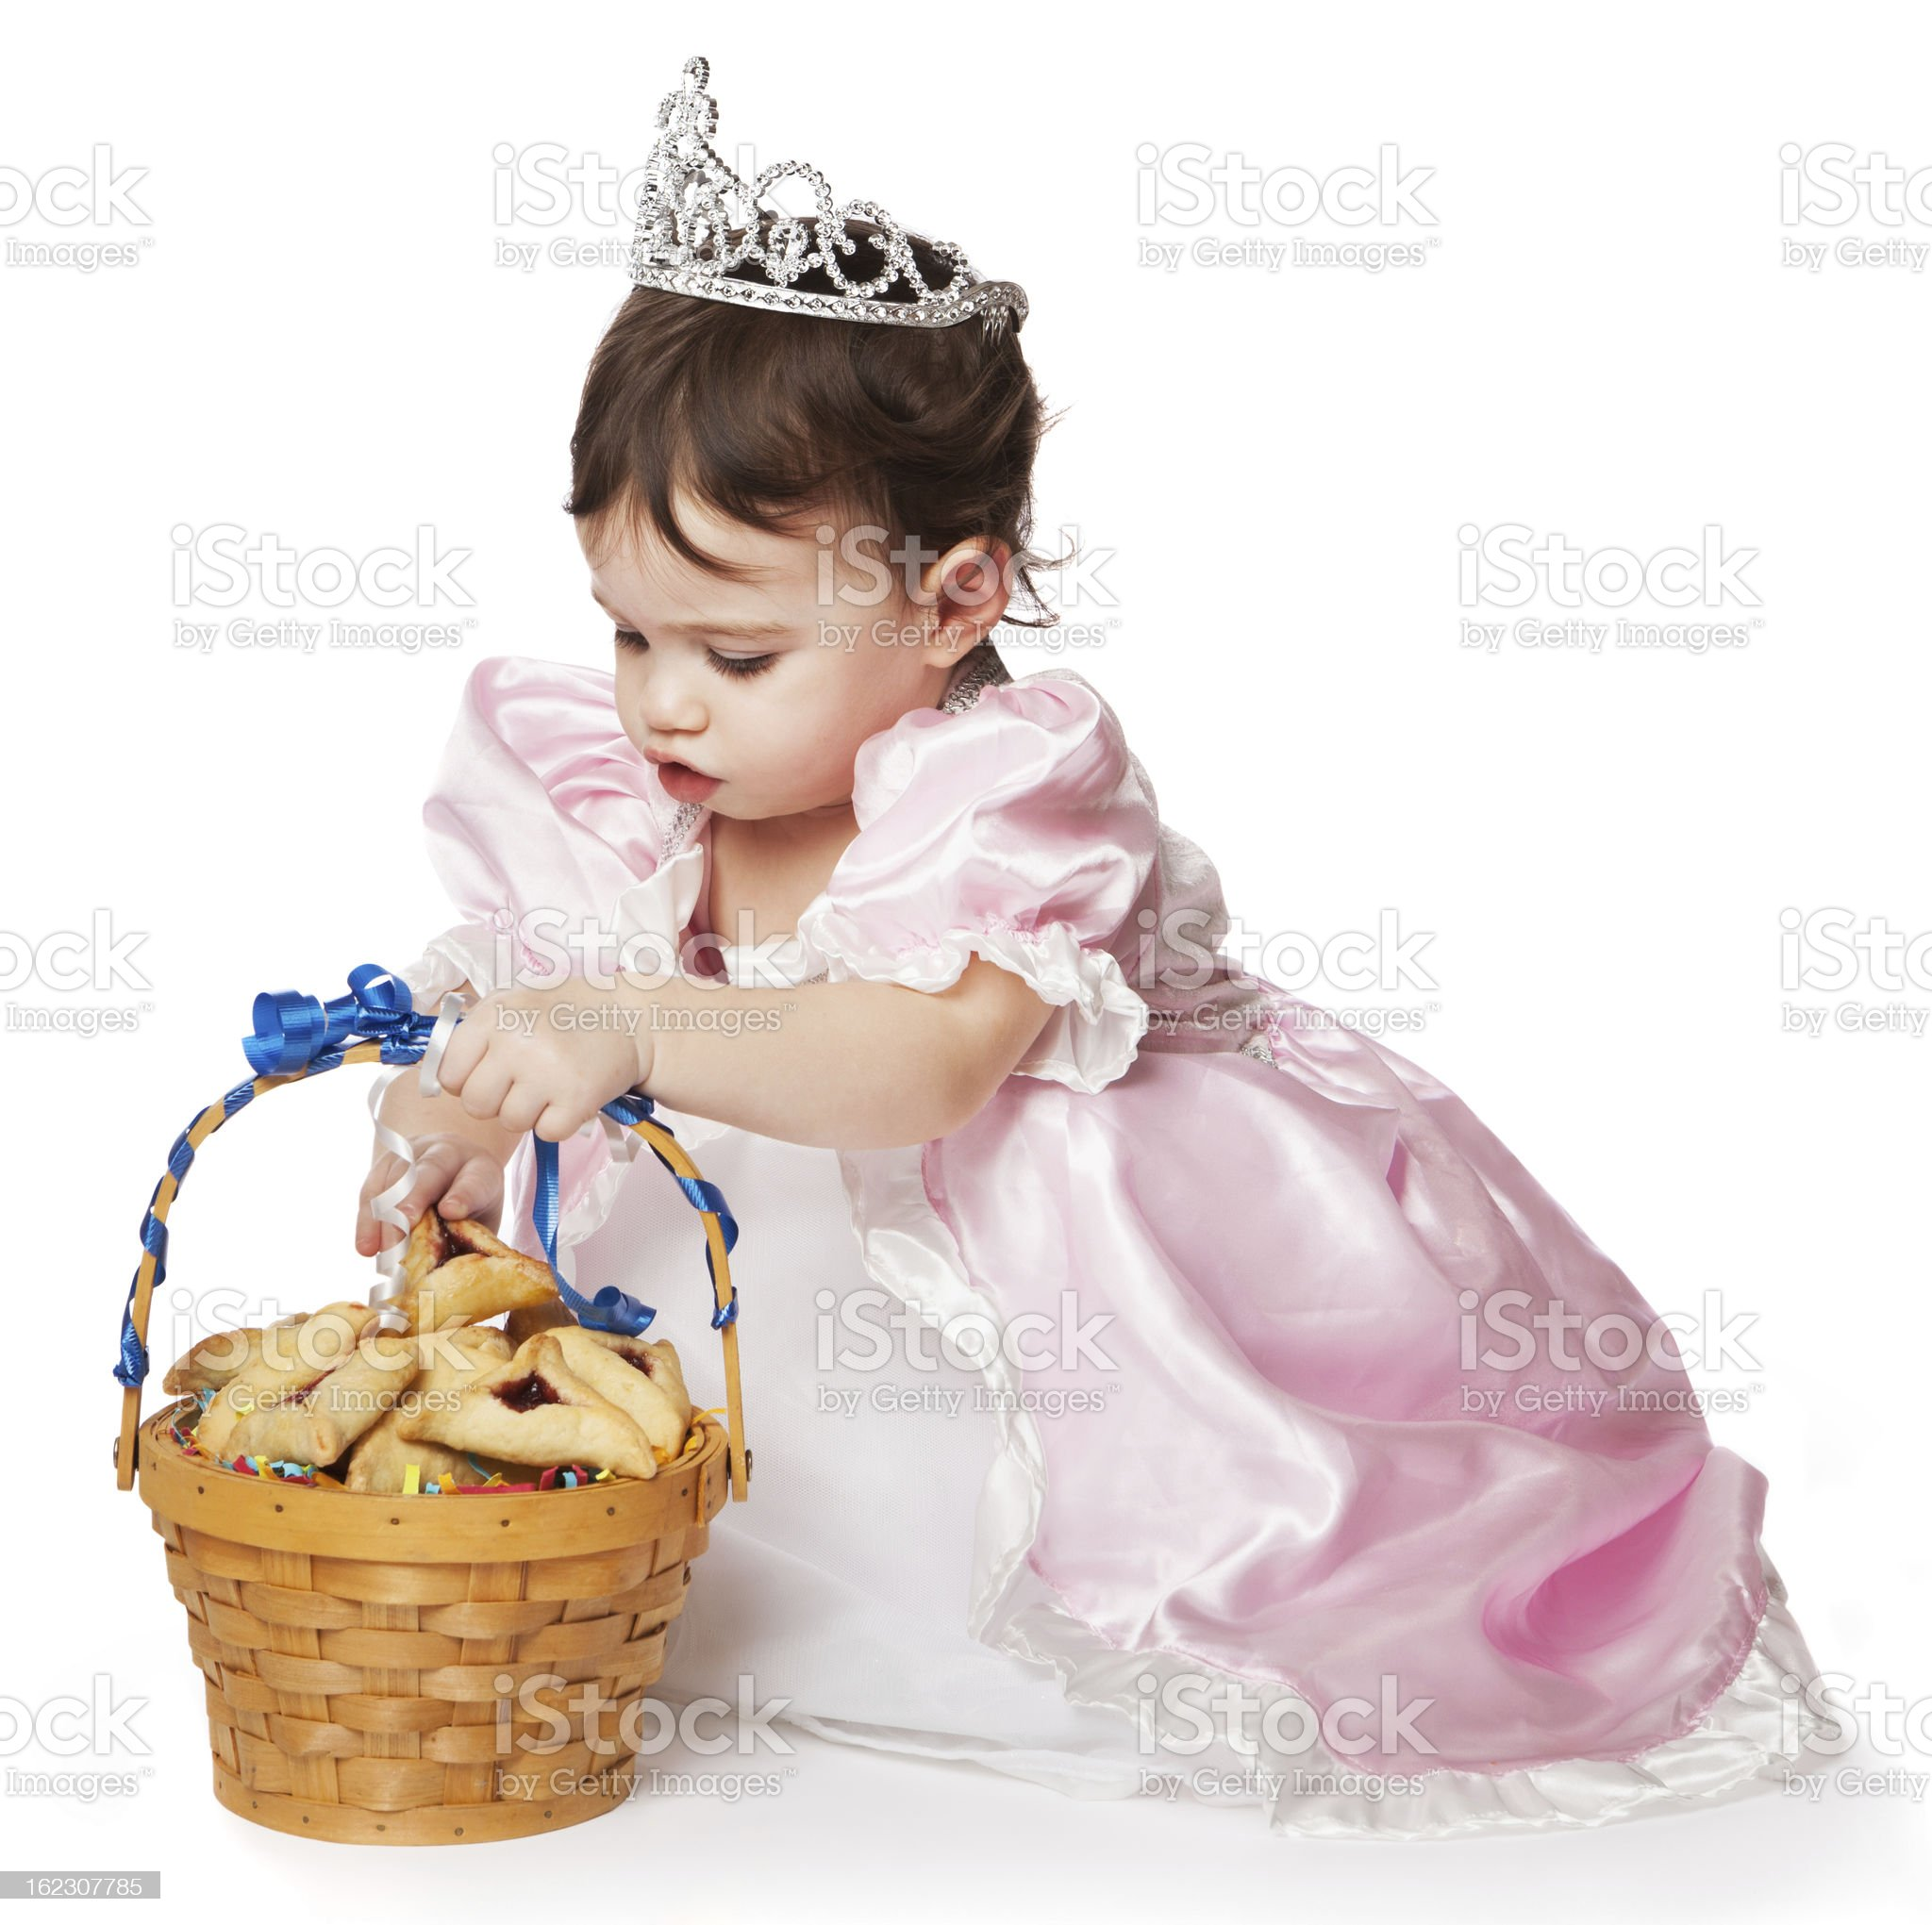 Purim royalty-free stock photo